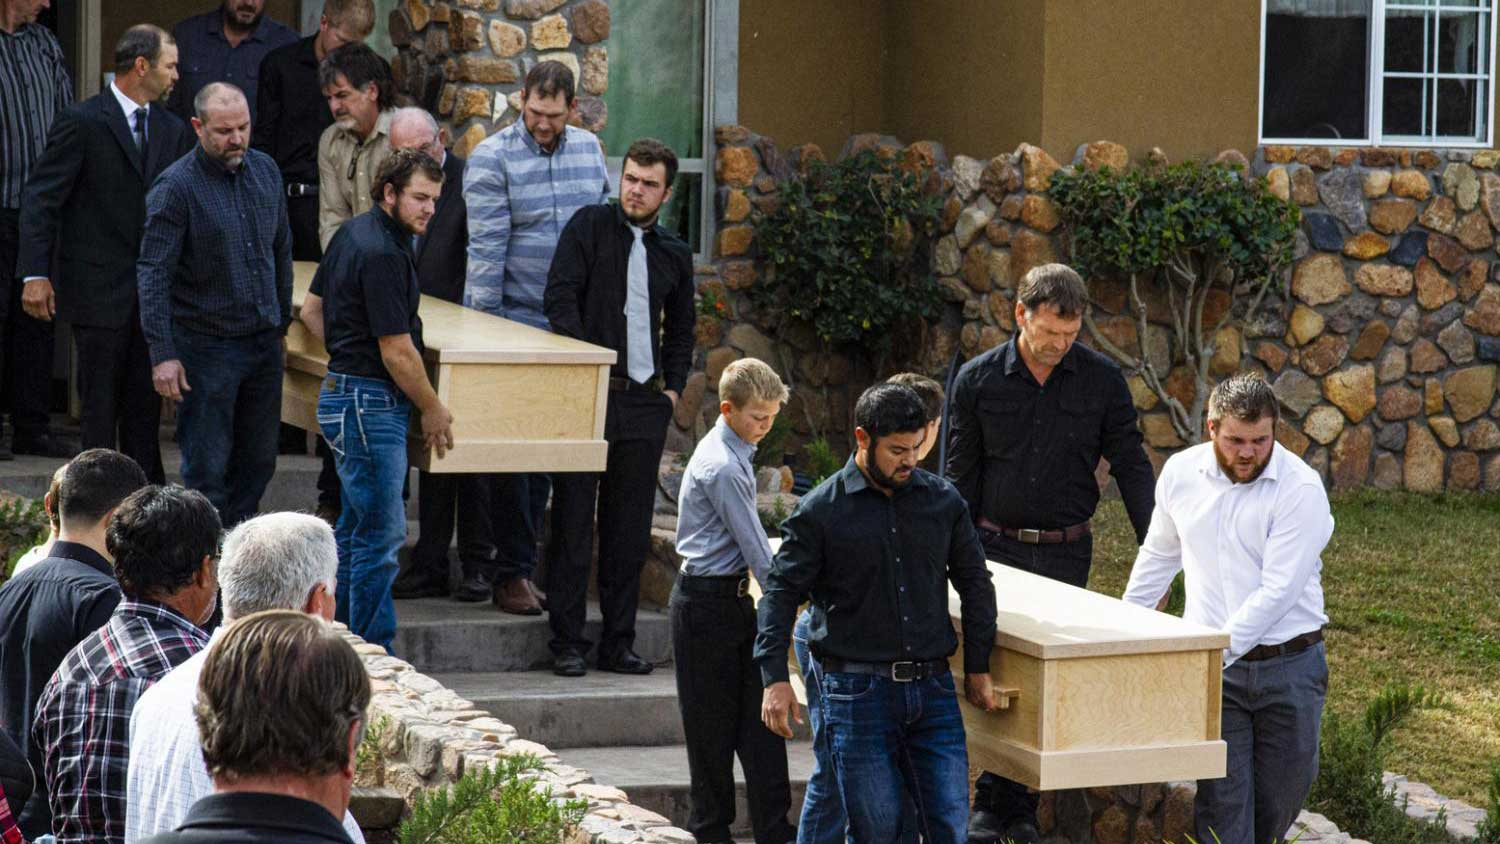 Family members carry caskets toward the ceremony on Nov. 8, 2019, for three of those killed in the vicious attack against a small Mormon community in Sonora on Nov. 4, 2019.